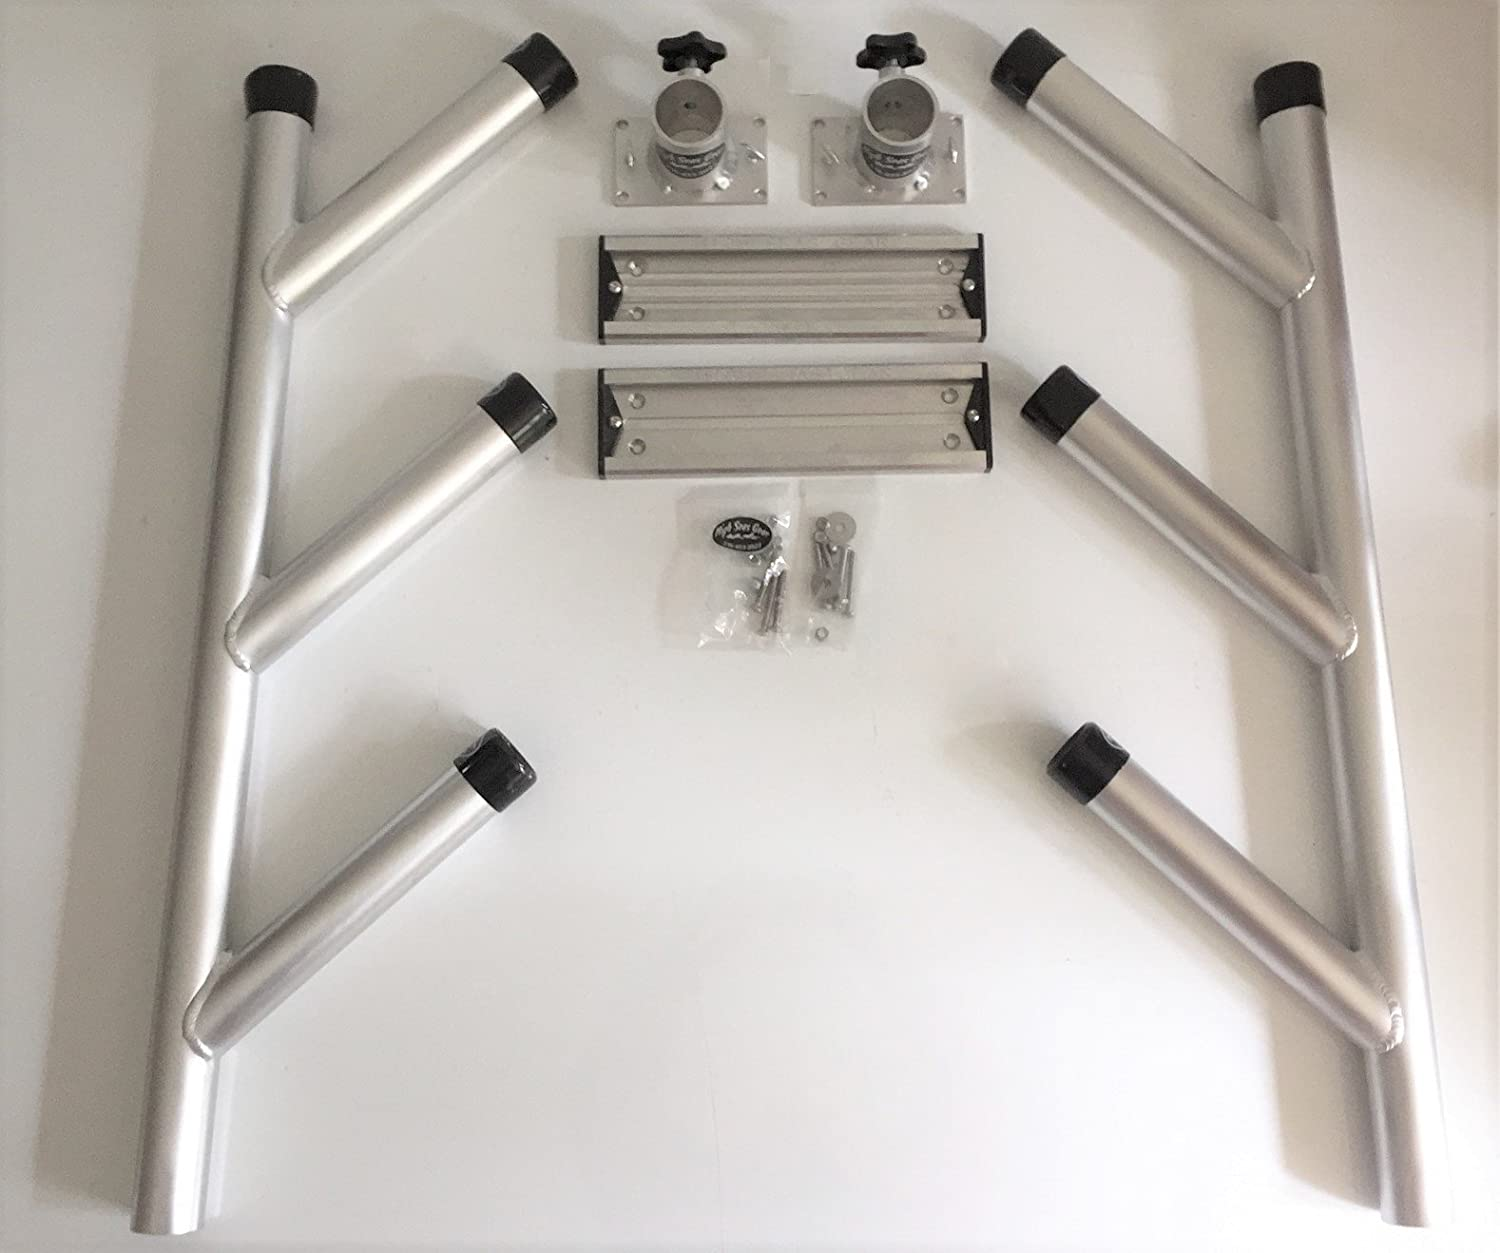 2-HD Triple Tree rod holders for track systems with Heavy Duty end caps